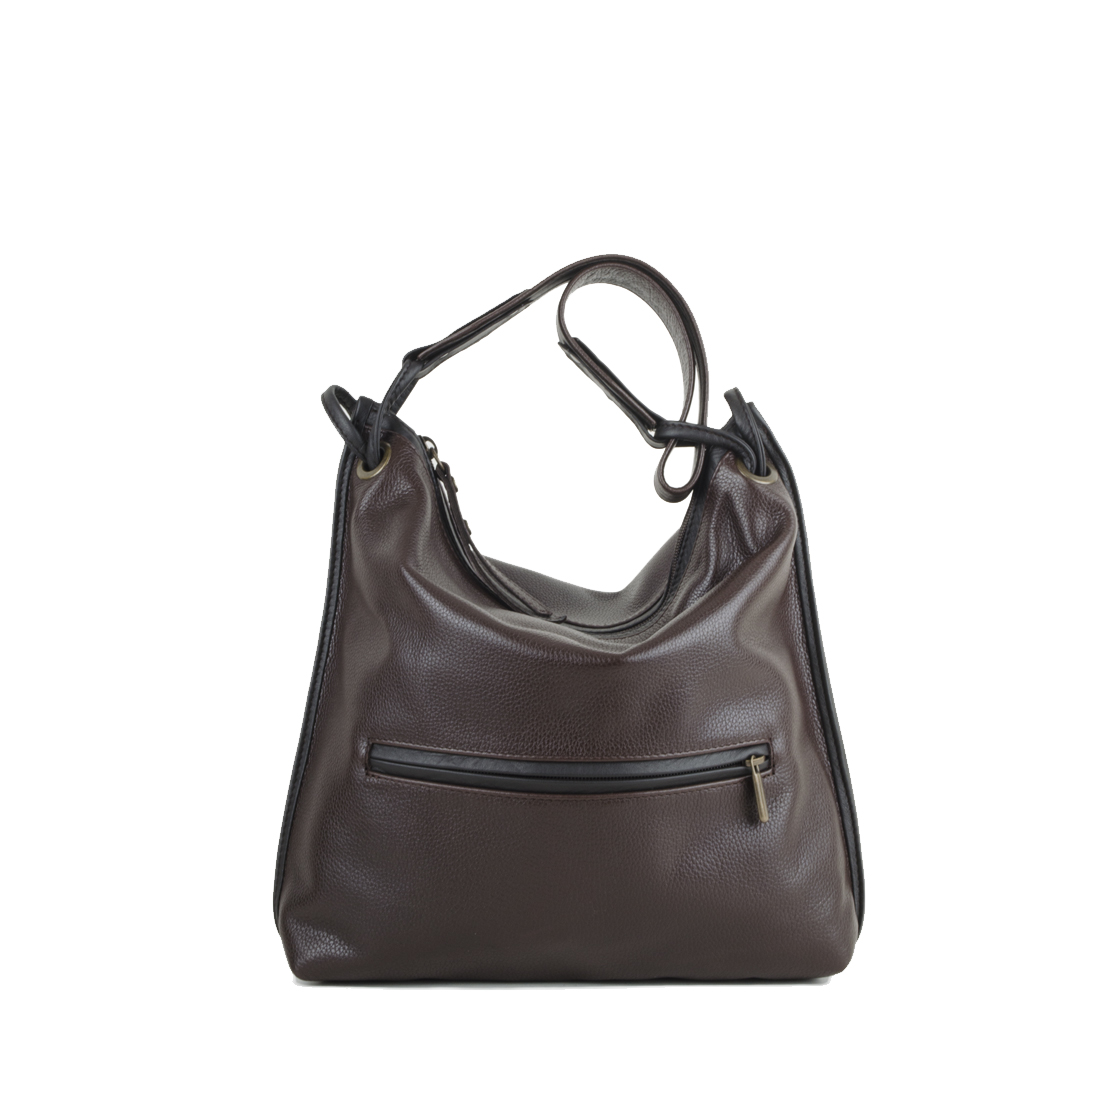 Maria Brown Leather Shoulder Bag